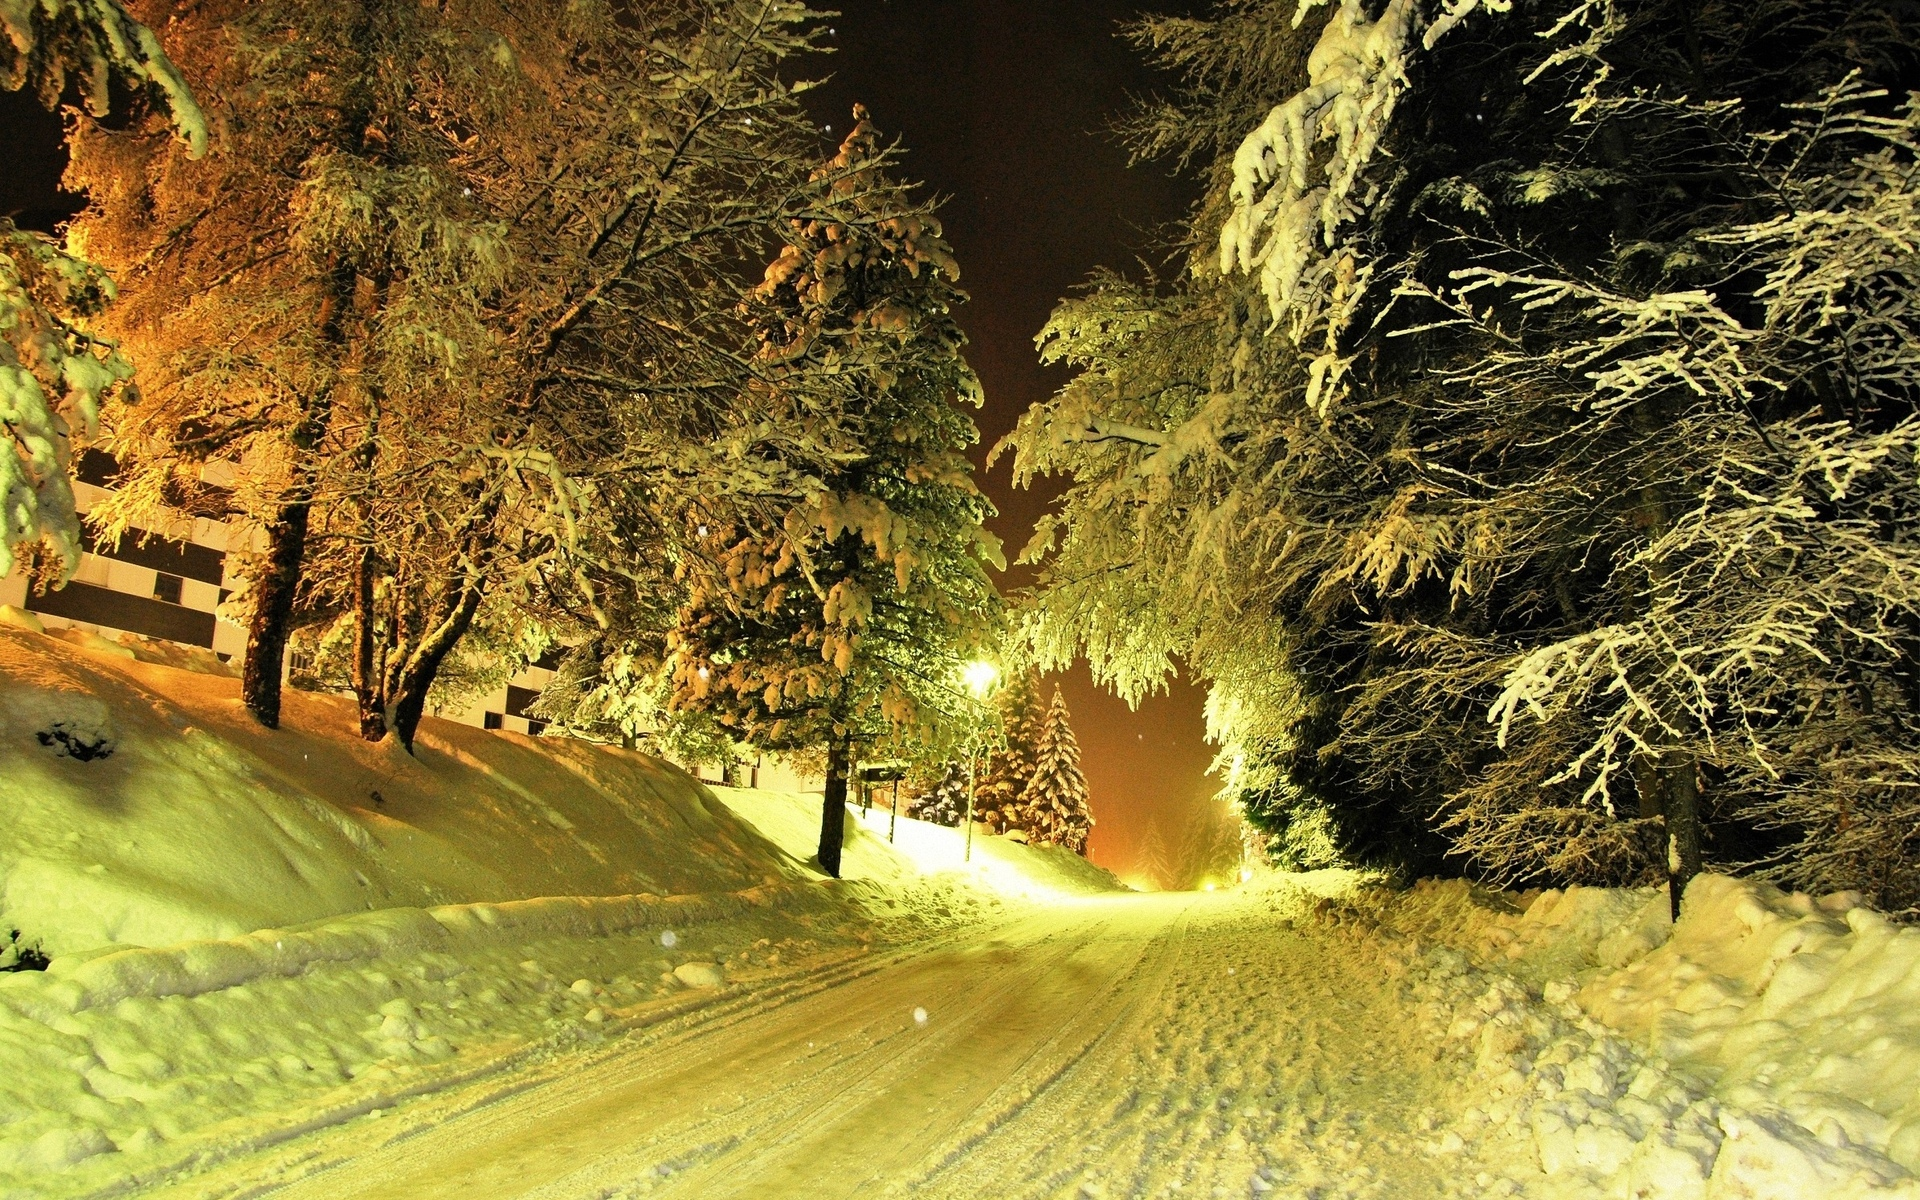 nature landscapes roads street night light trees winter snow